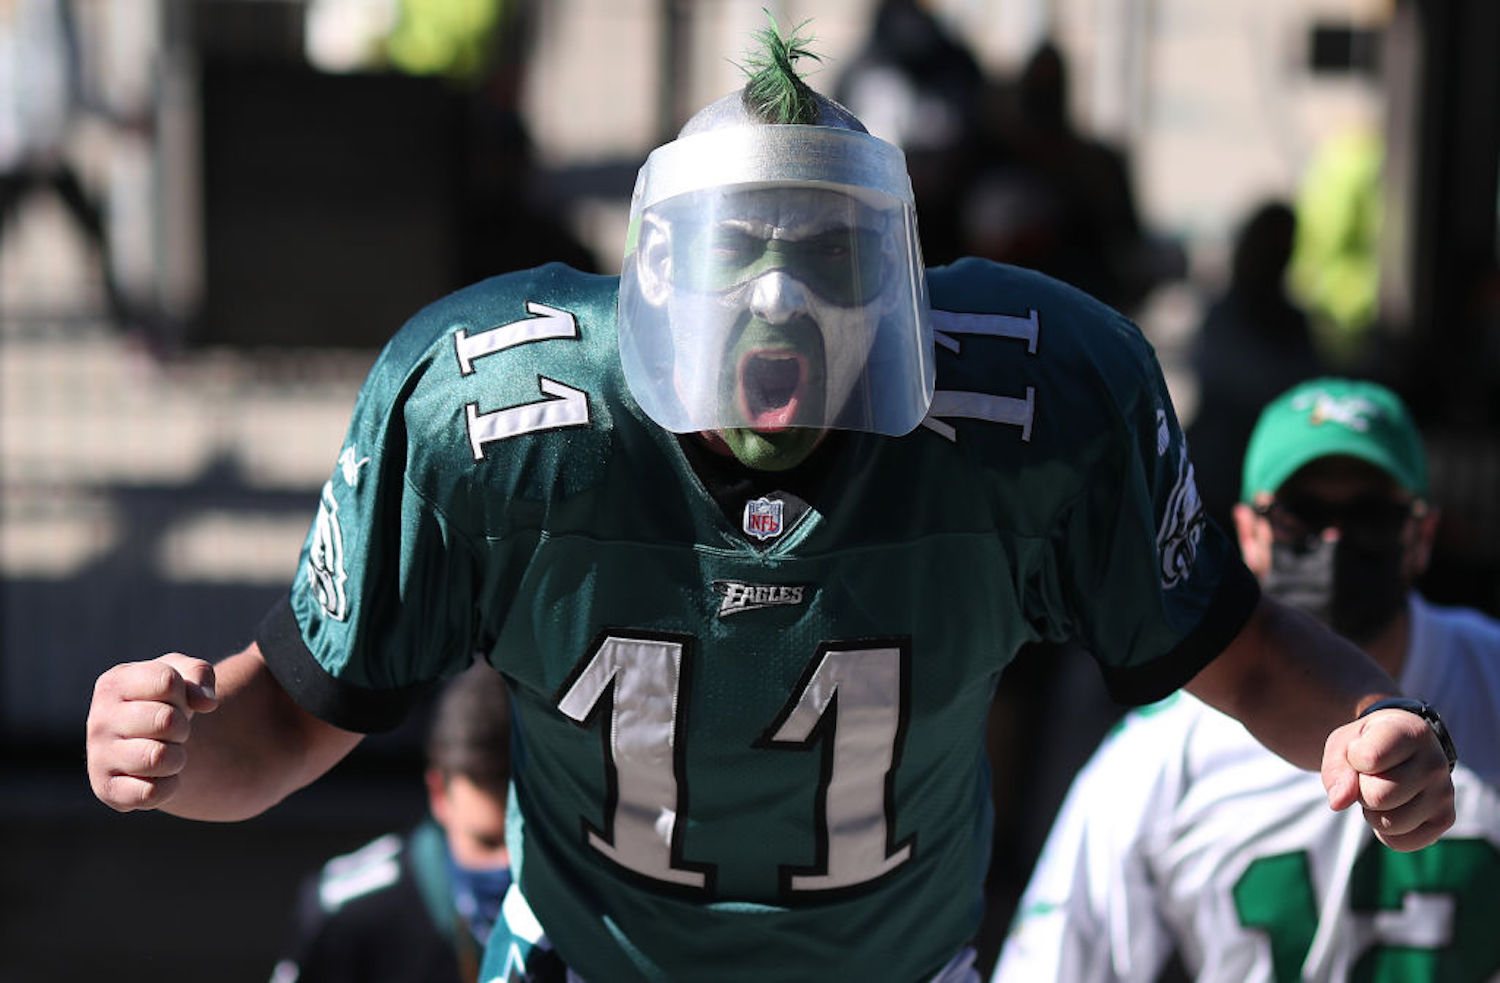 The Philadelphia Eagles allowed fans in their staidium on Sunday for the first time this season, so they naturally got into a brawl.